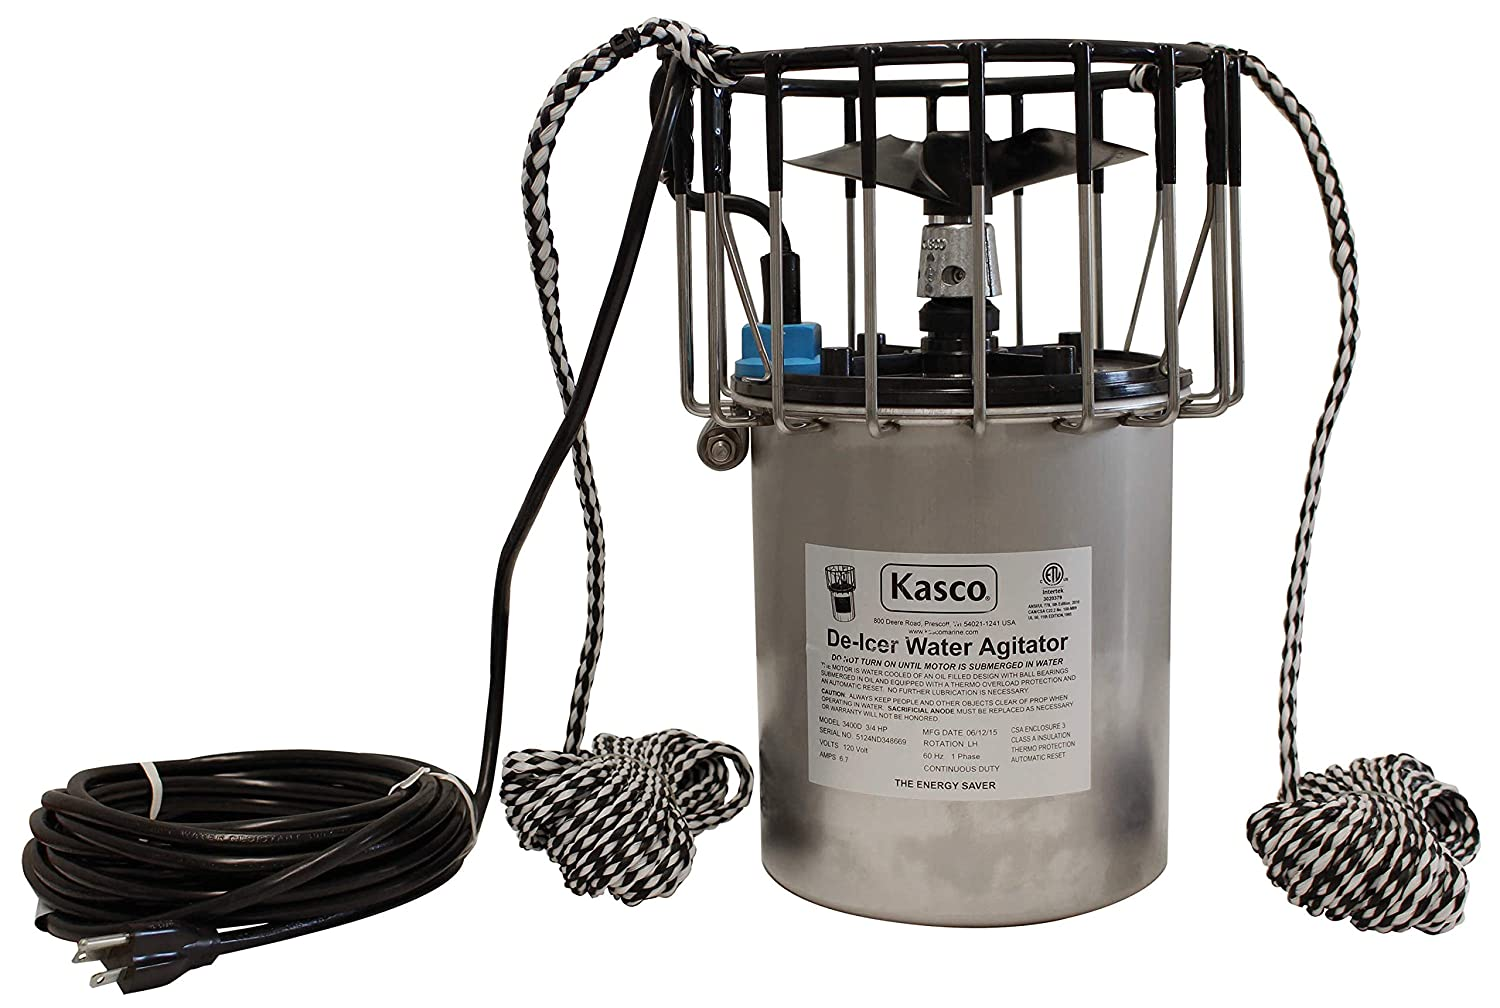 Kasco Marine Inc. 3400D050 50 Foot Powercord Marine De-Icer (120V Single Phase, 60Hz, 50' Cord, 3400D 3/4 HP)